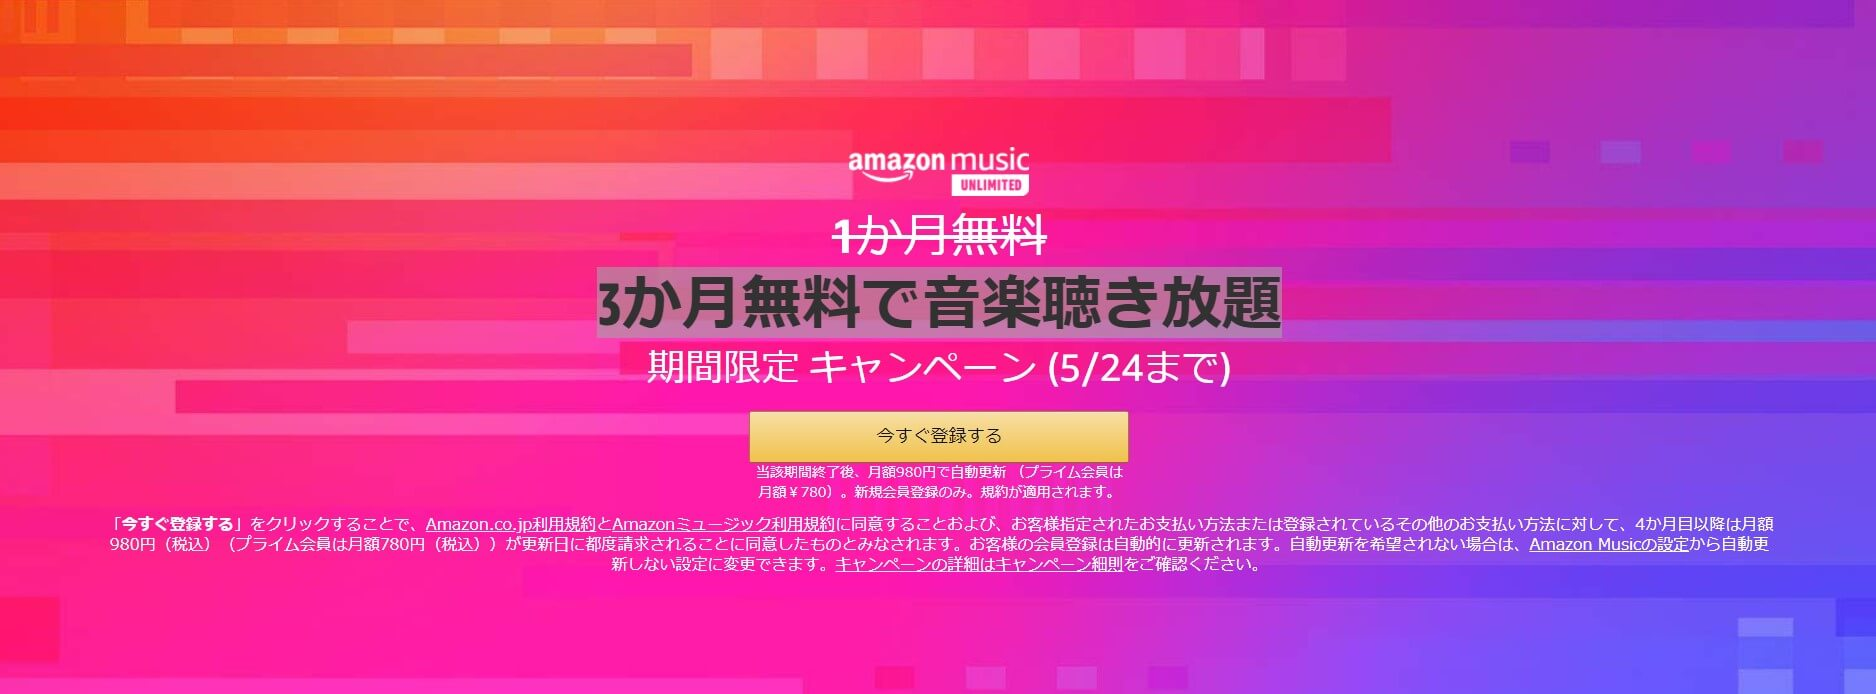 amzon music unlimitedキャンペーン